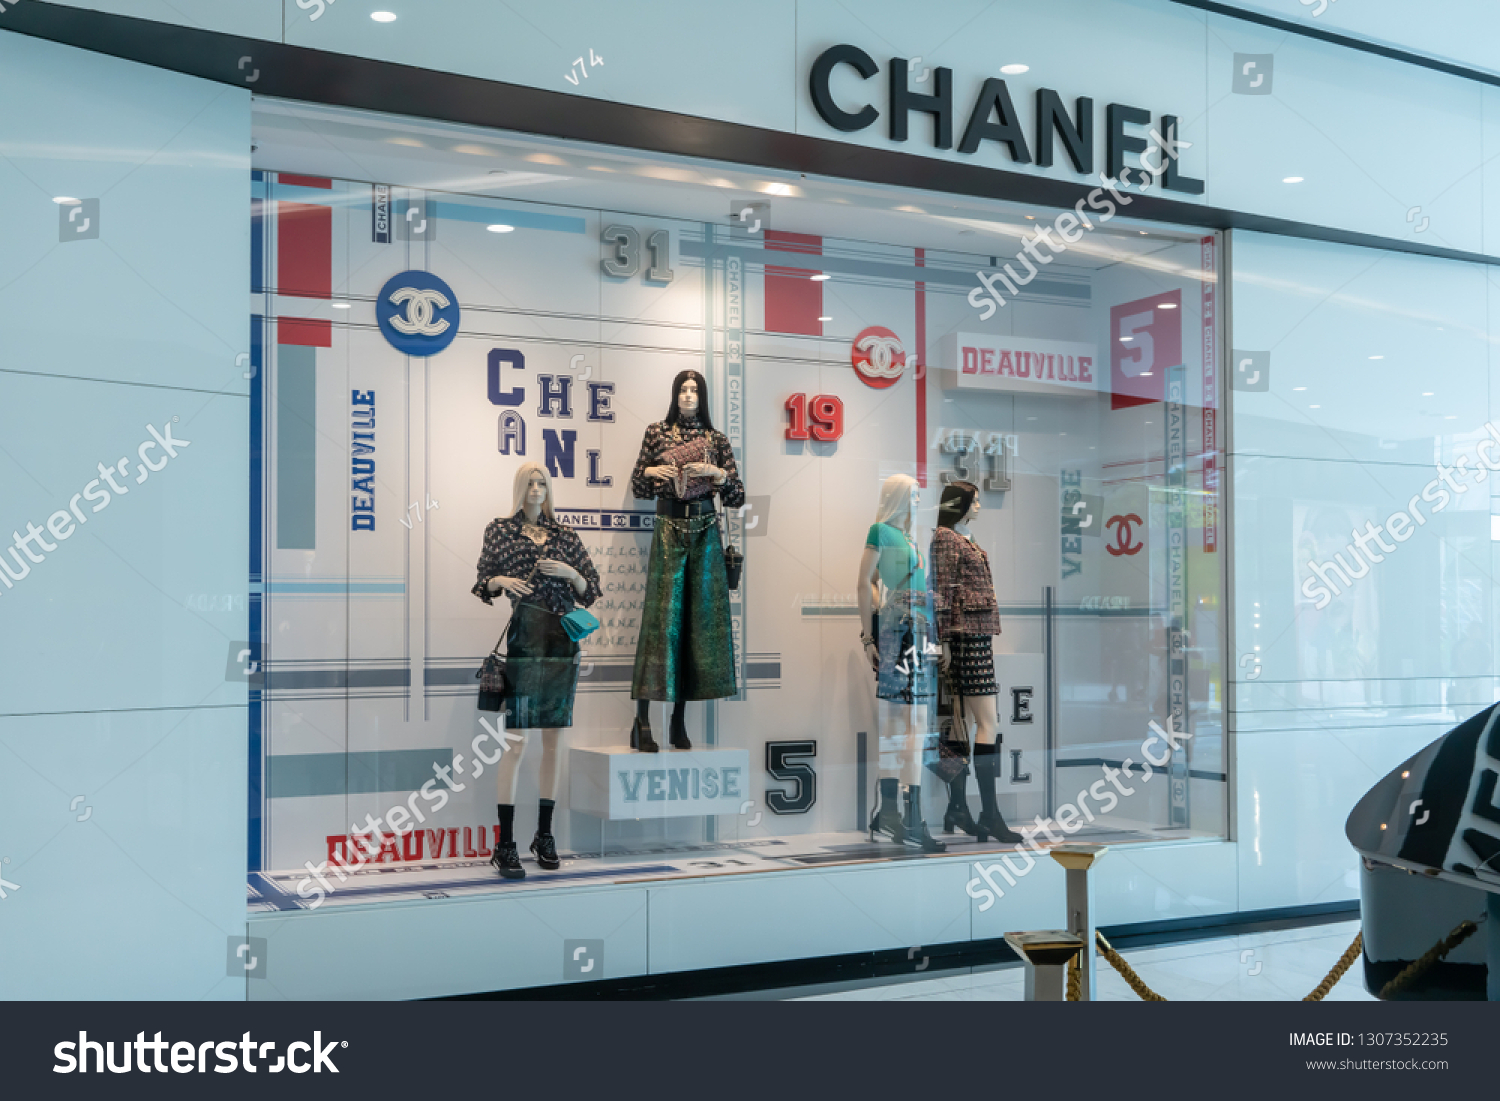 cf6b0b845c7 Chanel Shop Emquatier Bangkok Thailand Feb Stock Photo (Edit Now ...